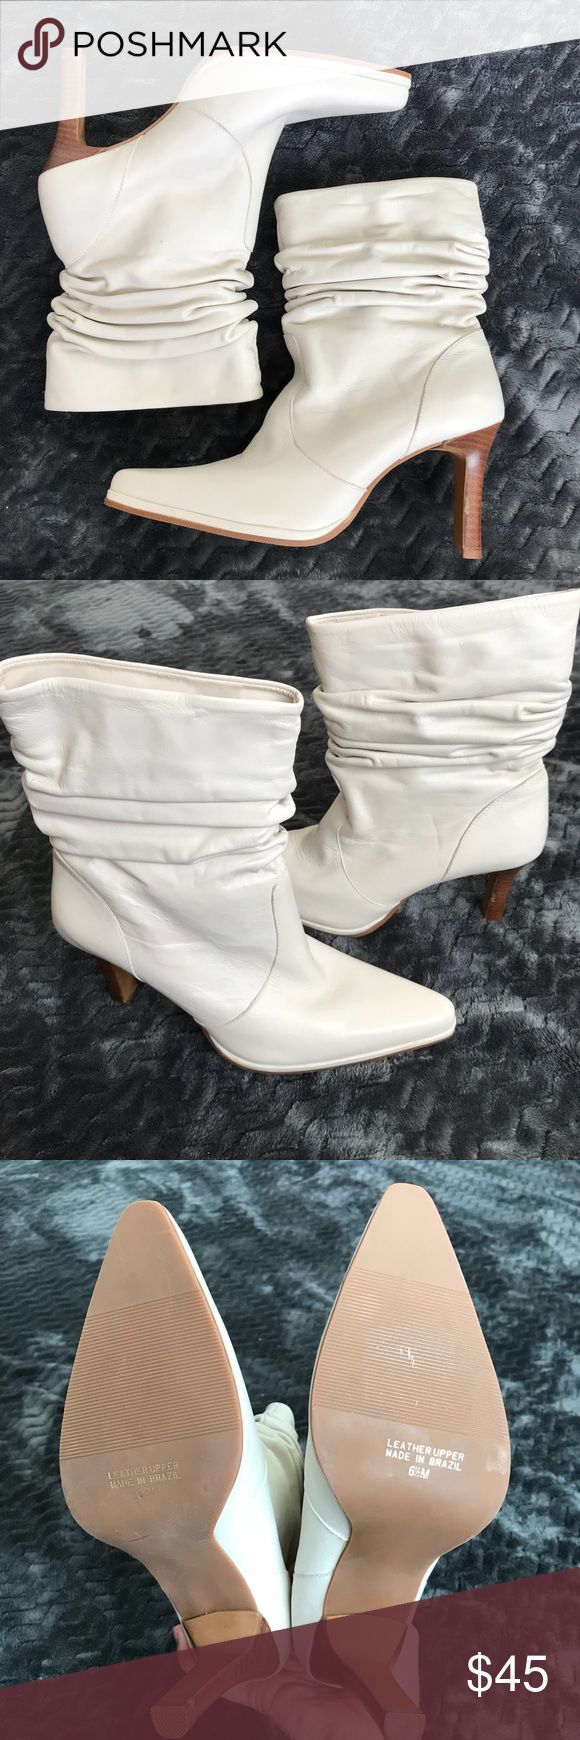 On-trend white ankle boots Get that off-duty-model look with these white ruched leather ankle boots.   Stiletto heel is about 3 inches high. Squared pointy toe. NWOB. Made in Brazil. Very light cream color, not paper-white.  The White Mountain brand is known for comfort and durability. White Mountain Shoes Ankle Boots & Booties